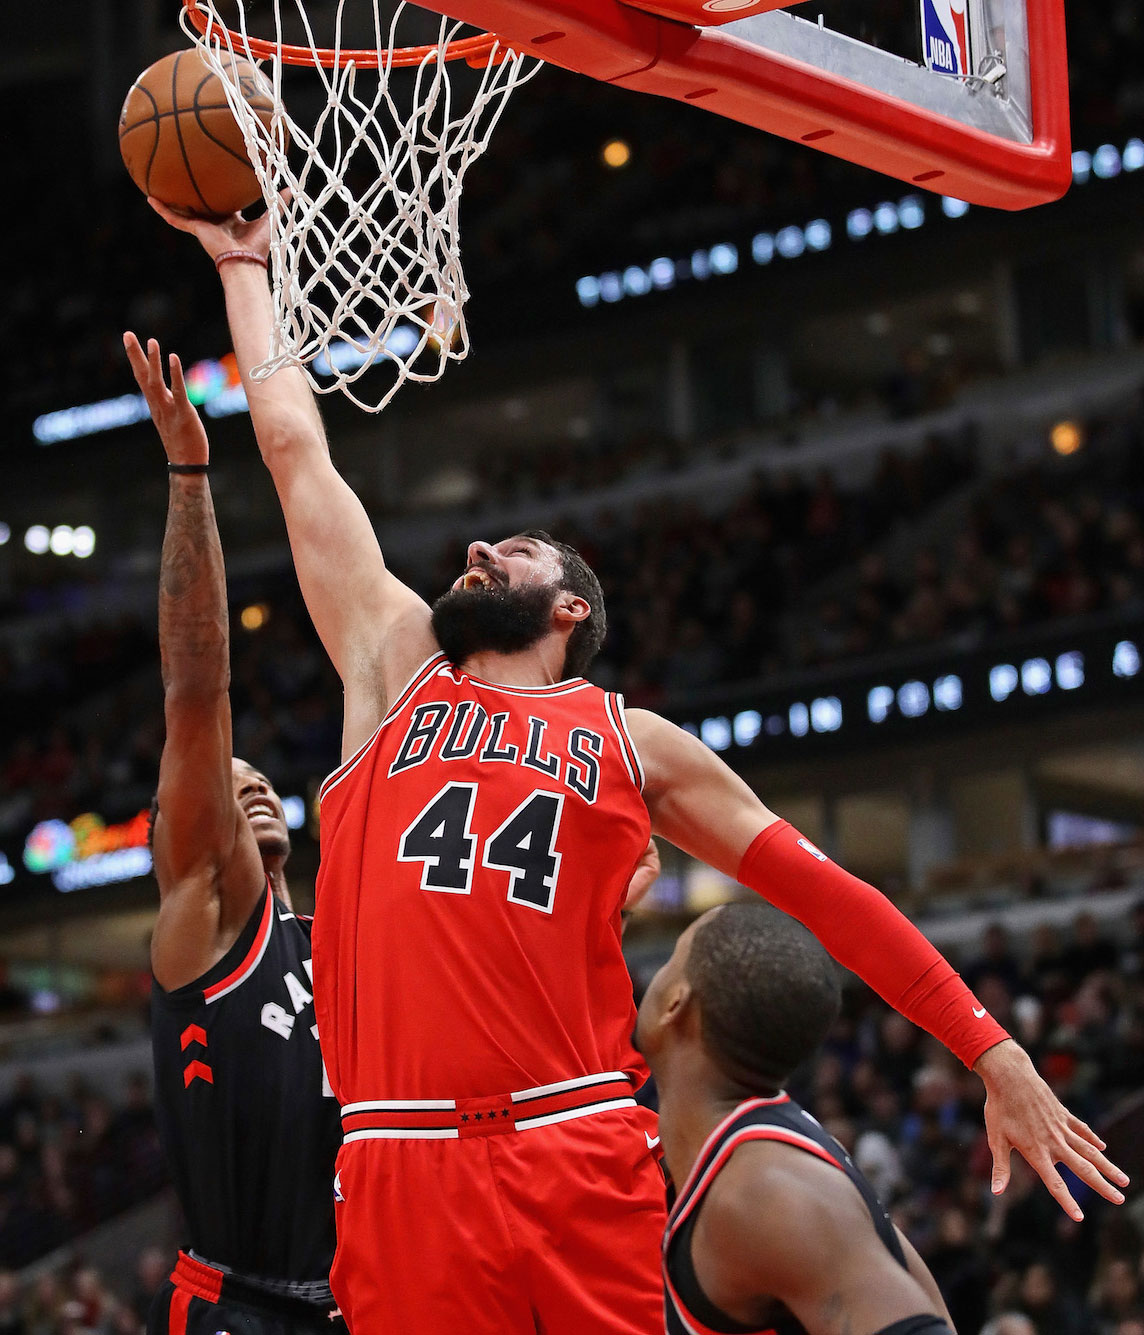 Nikola Mirotic looking for a rebound.